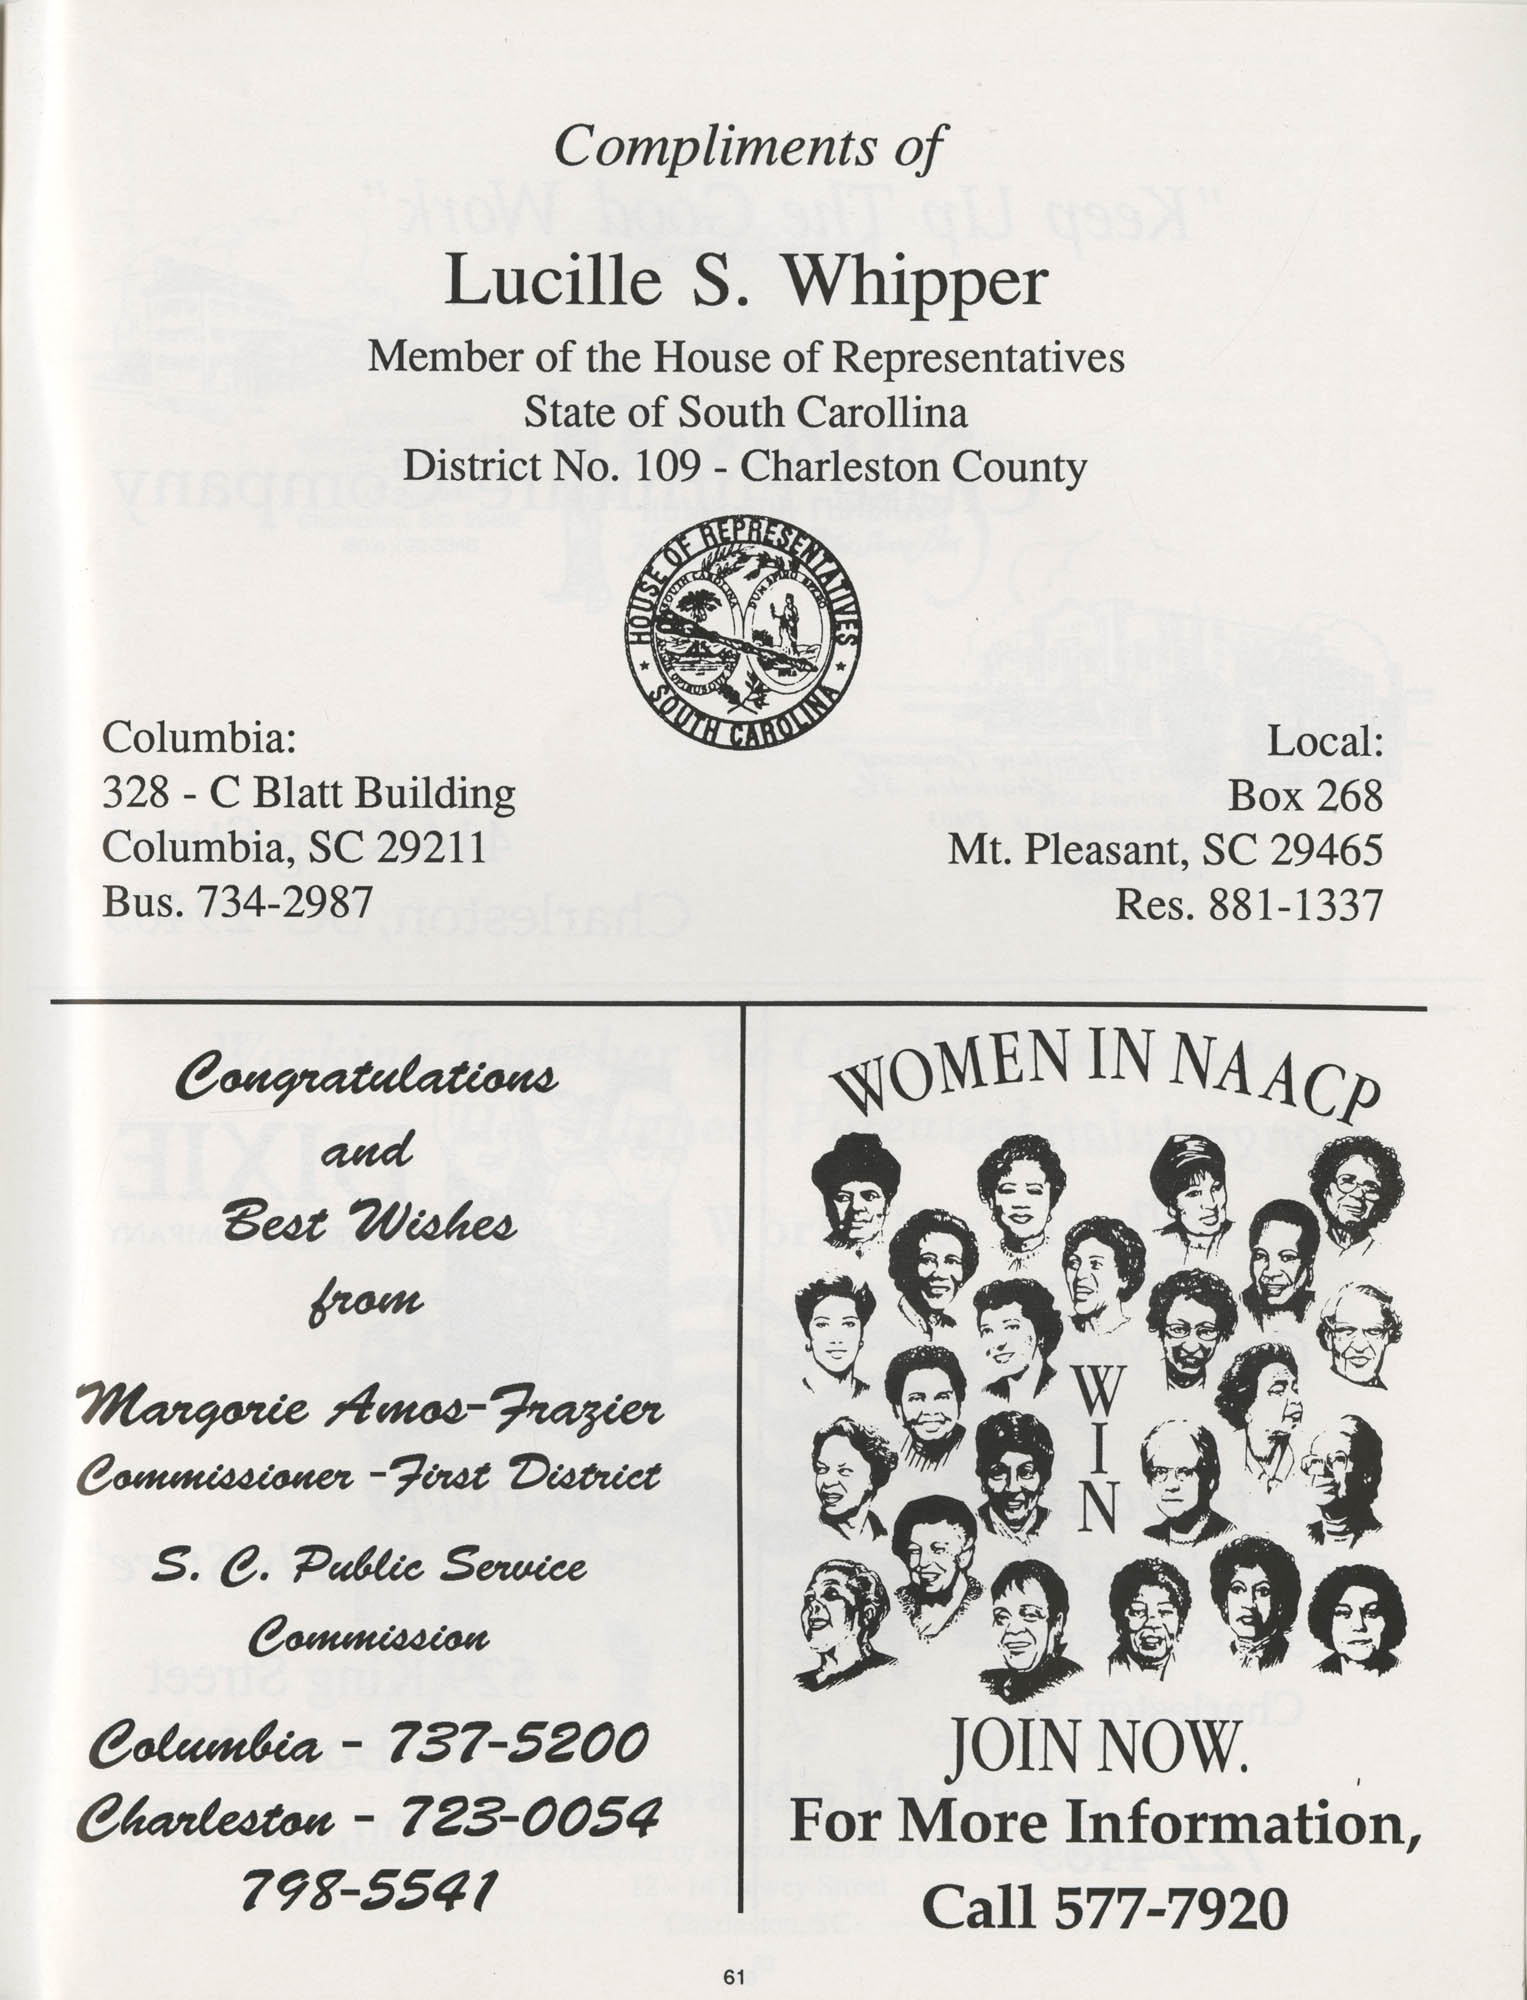 1990 NAACP Freedom Fund Magazine, Charleston Branch of the NAACP, 74th Anniversary, Page 61